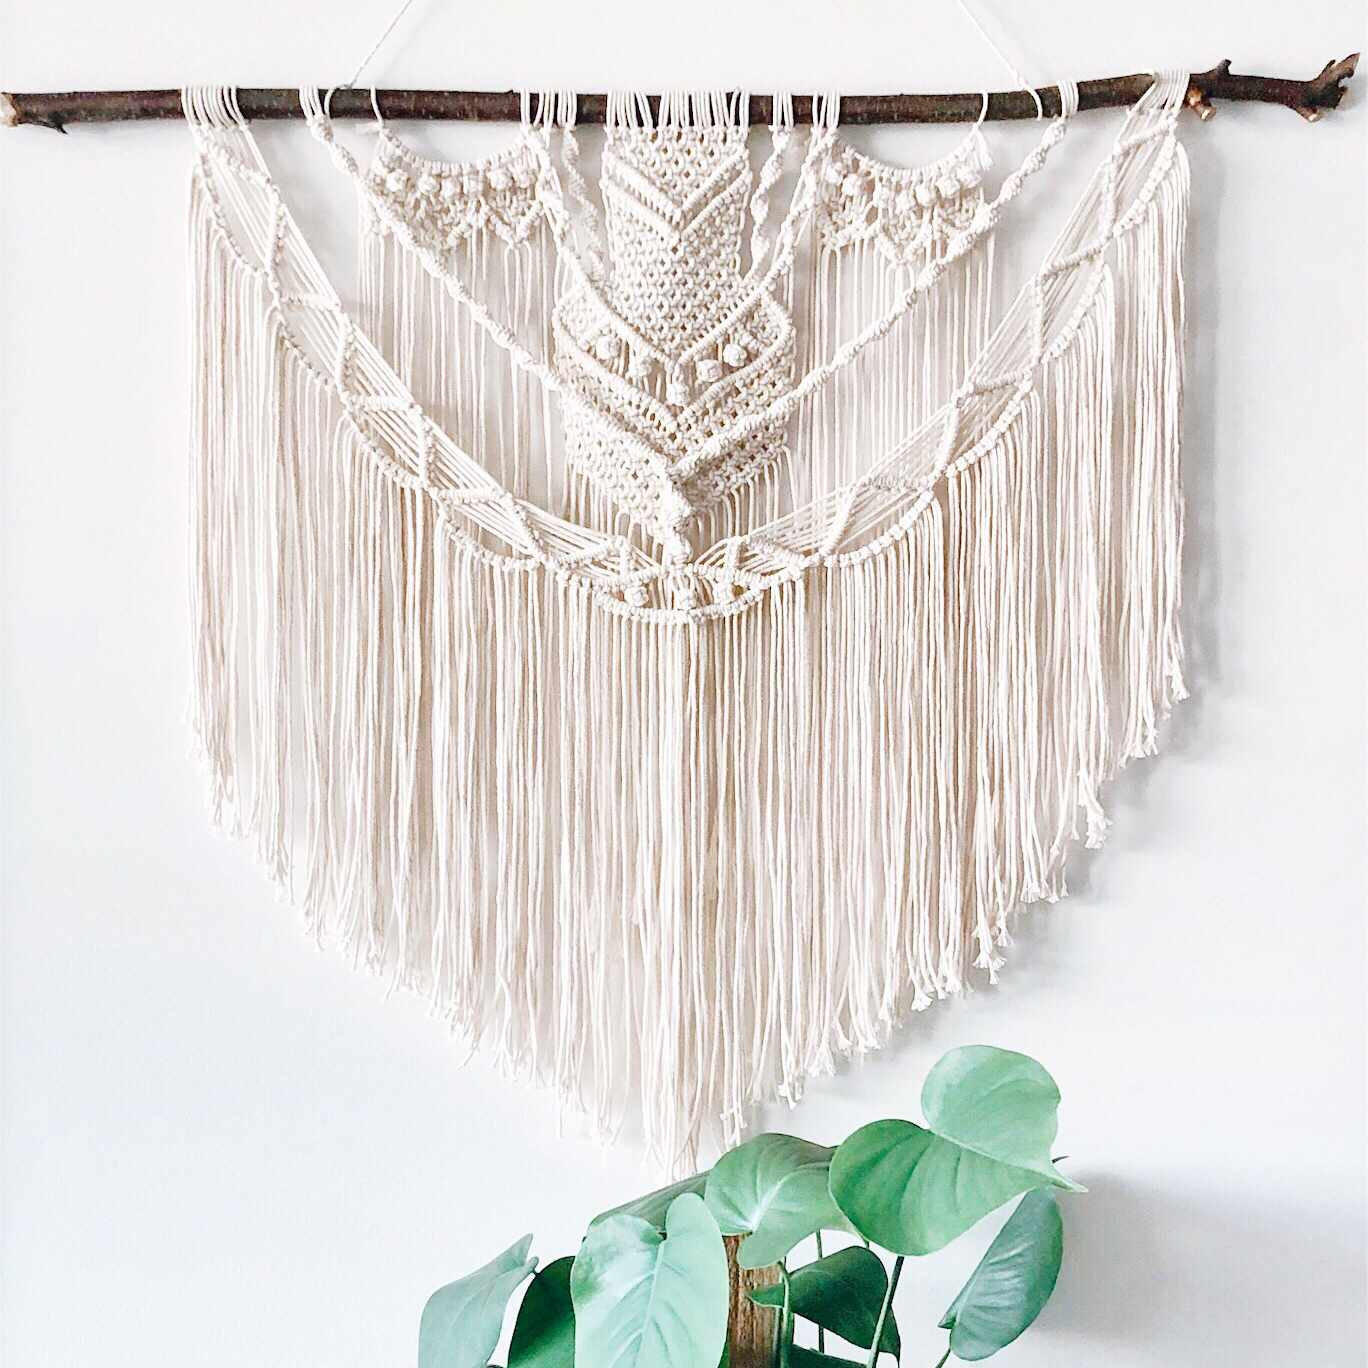 Macrame wall hanging with a plant below.